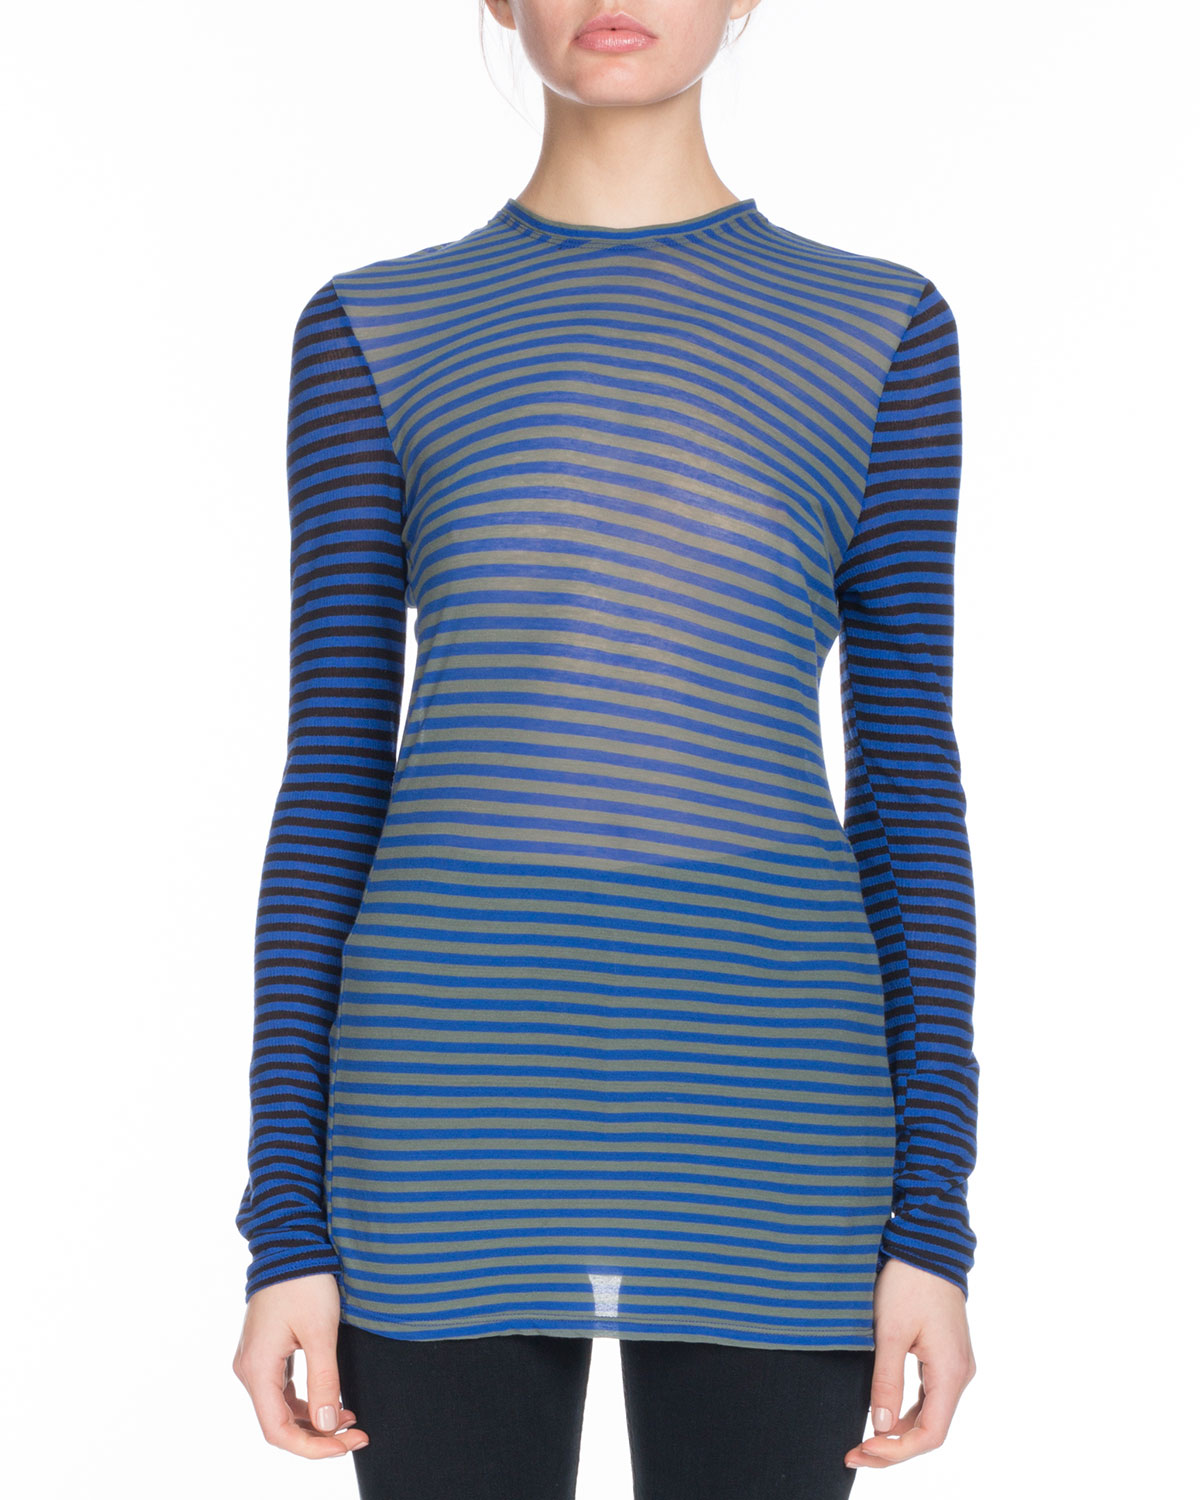 PSWL Striped Jersey Top - Black Proenza Schouler